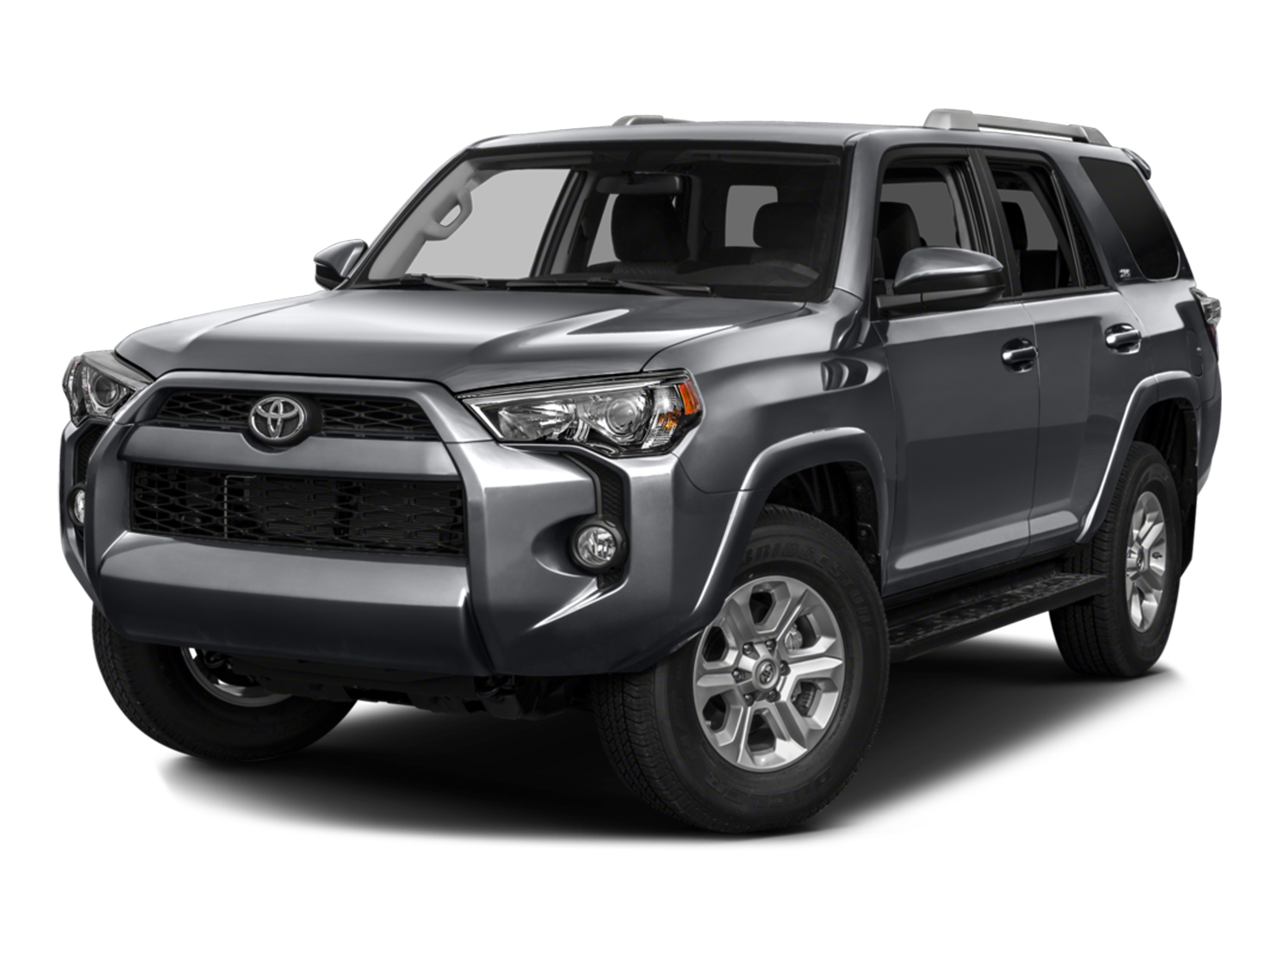 2016 Toyota 4Runner Dealer Serving Oakland and San Jose